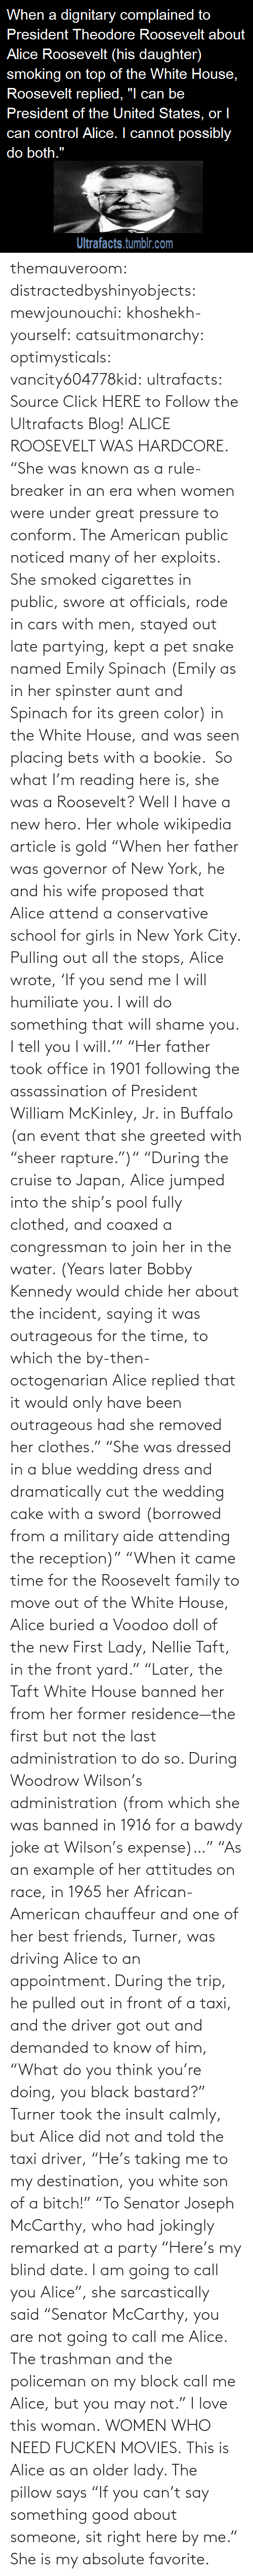 "Join: themauveroom: distractedbyshinyobjects:  mewjounouchi:  khoshekh-yourself:  catsuitmonarchy:  optimysticals:  vancity604778kid:  ultrafacts:     Source Click HERE to Follow the Ultrafacts Blog!     ALICE ROOSEVELT WAS HARDCORE. ""She was known as a rule-breaker in an era when women were under great pressure to conform. The American public noticed many of her exploits. She smoked cigarettes in public, swore at officials, rode in cars with men, stayed out late partying, kept a pet snake named Emily Spinach (Emily as in her spinster aunt and Spinach for its green color) in the White House, and was seen placing bets with a bookie.    So what I'm reading here is, she was a Roosevelt?  Well I have a new hero.  Her whole wikipedia article is gold ""When her father was governor of New York, he and his wife proposed that Alice attend a conservative school for girls in New York City. Pulling out all the stops, Alice wrote, 'If you send me I will humiliate you. I will do something that will shame you. I tell you I will.'"" ""Her father took office in 1901 following the assassination of President William McKinley, Jr. in Buffalo (an event that she greeted with ""sheer rapture."")"" ""During the cruise to Japan, Alice jumped into the ship's pool fully clothed, and coaxed a congressman to join her in the water. (Years later Bobby Kennedy would chide her about the incident, saying it was outrageous for the time, to which the by-then-octogenarian Alice replied that it would only have been outrageous had she removed her clothes."" ""She was dressed in a blue wedding dress and dramatically cut the wedding cake with a sword (borrowed from a military aide attending the reception)"" ""When it came time for the Roosevelt family to move out of the White House, Alice buried a Voodoo doll of the new First Lady, Nellie Taft, in the front yard."" ""Later, the Taft White House banned her from her former residence—the first but not the last administration to do so. During Woodrow Wilson's administration (from which she was banned in 1916 for a bawdy joke at Wilson's expense)…"" ""As an example of her attitudes on race, in 1965 her African-American chauffeur and one of her best friends, Turner, was driving Alice to an appointment. During the trip, he pulled out in front of a taxi, and the driver got out and demanded to know of him, ""What do you think you're doing, you black bastard?"" Turner took the insult calmly, but Alice did not and told the taxi driver, ""He's taking me to my destination, you white son of a bitch!"" ""To Senator Joseph McCarthy, who had jokingly remarked at a party ""Here's my blind date. I am going to call you Alice"", she sarcastically said ""Senator McCarthy, you are not going to call me Alice. The trashman and the policeman on my block call me Alice, but you may not.""  I love this woman.  WOMEN WHO NEED FUCKEN MOVIES.   This is Alice as an older lady. The pillow says ""If you can't say something good about someone, sit right here by me.""  She is my absolute favorite."